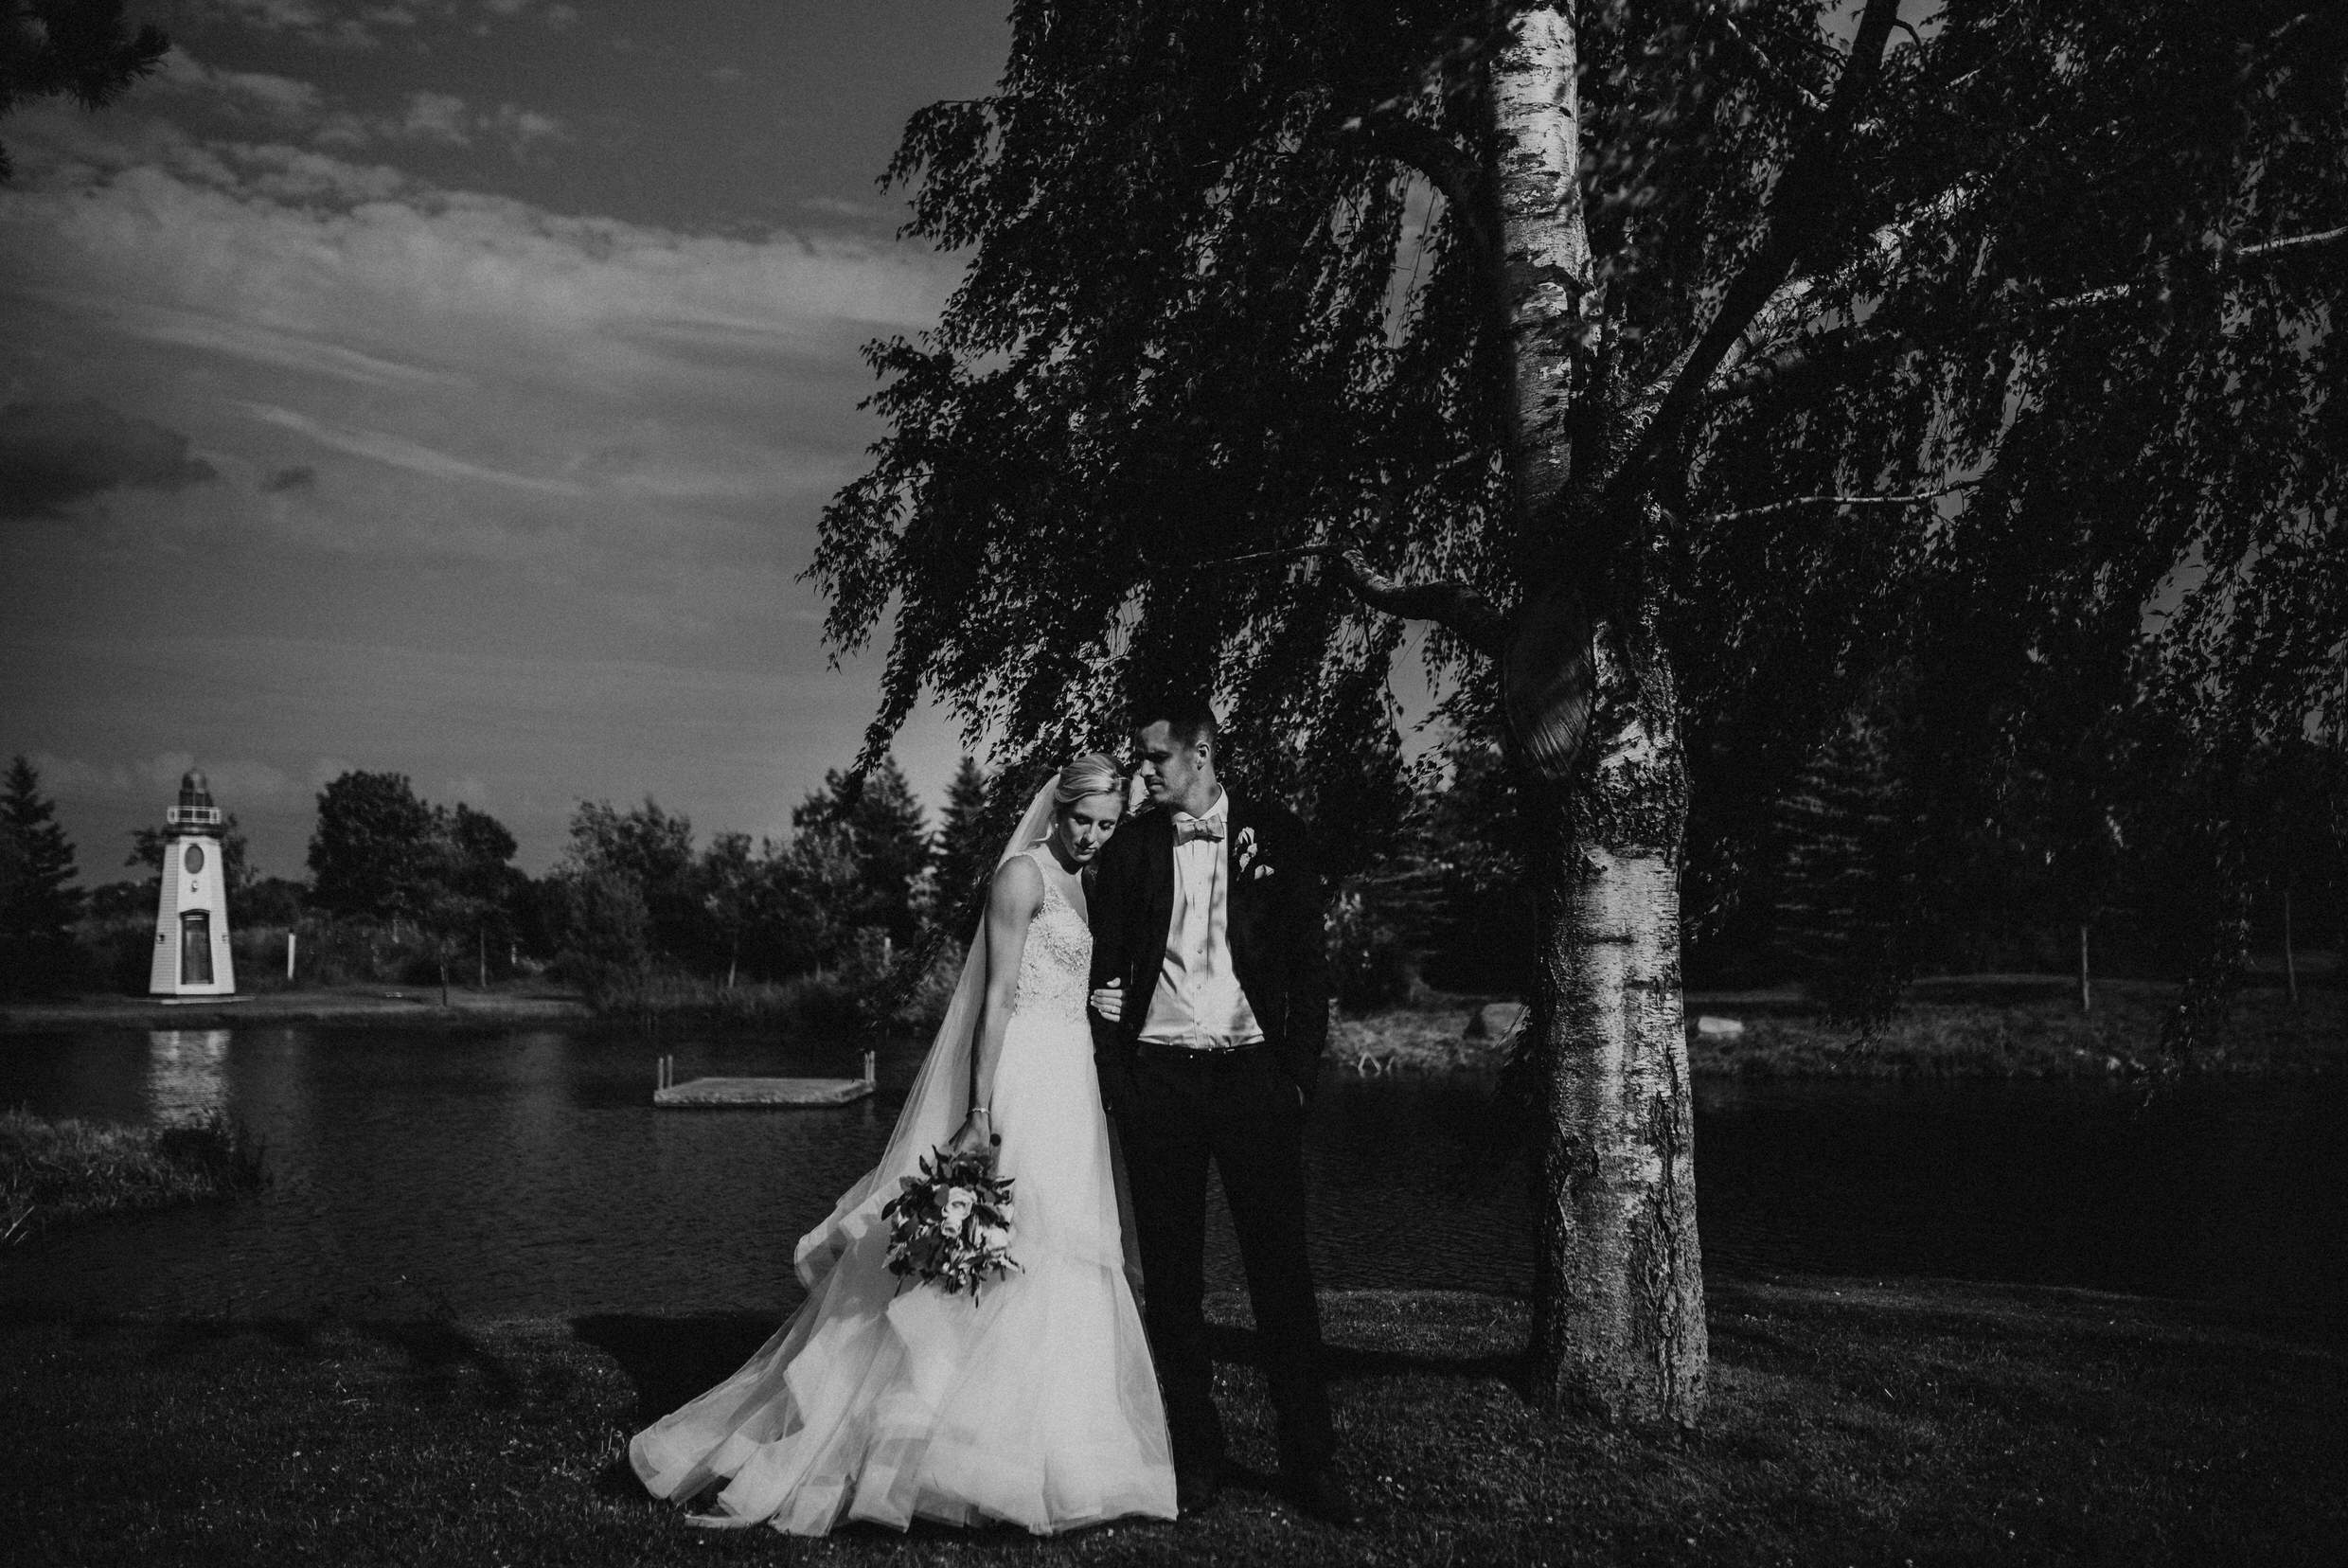 Belcroft Estates Wedding - bride and groom by the pond